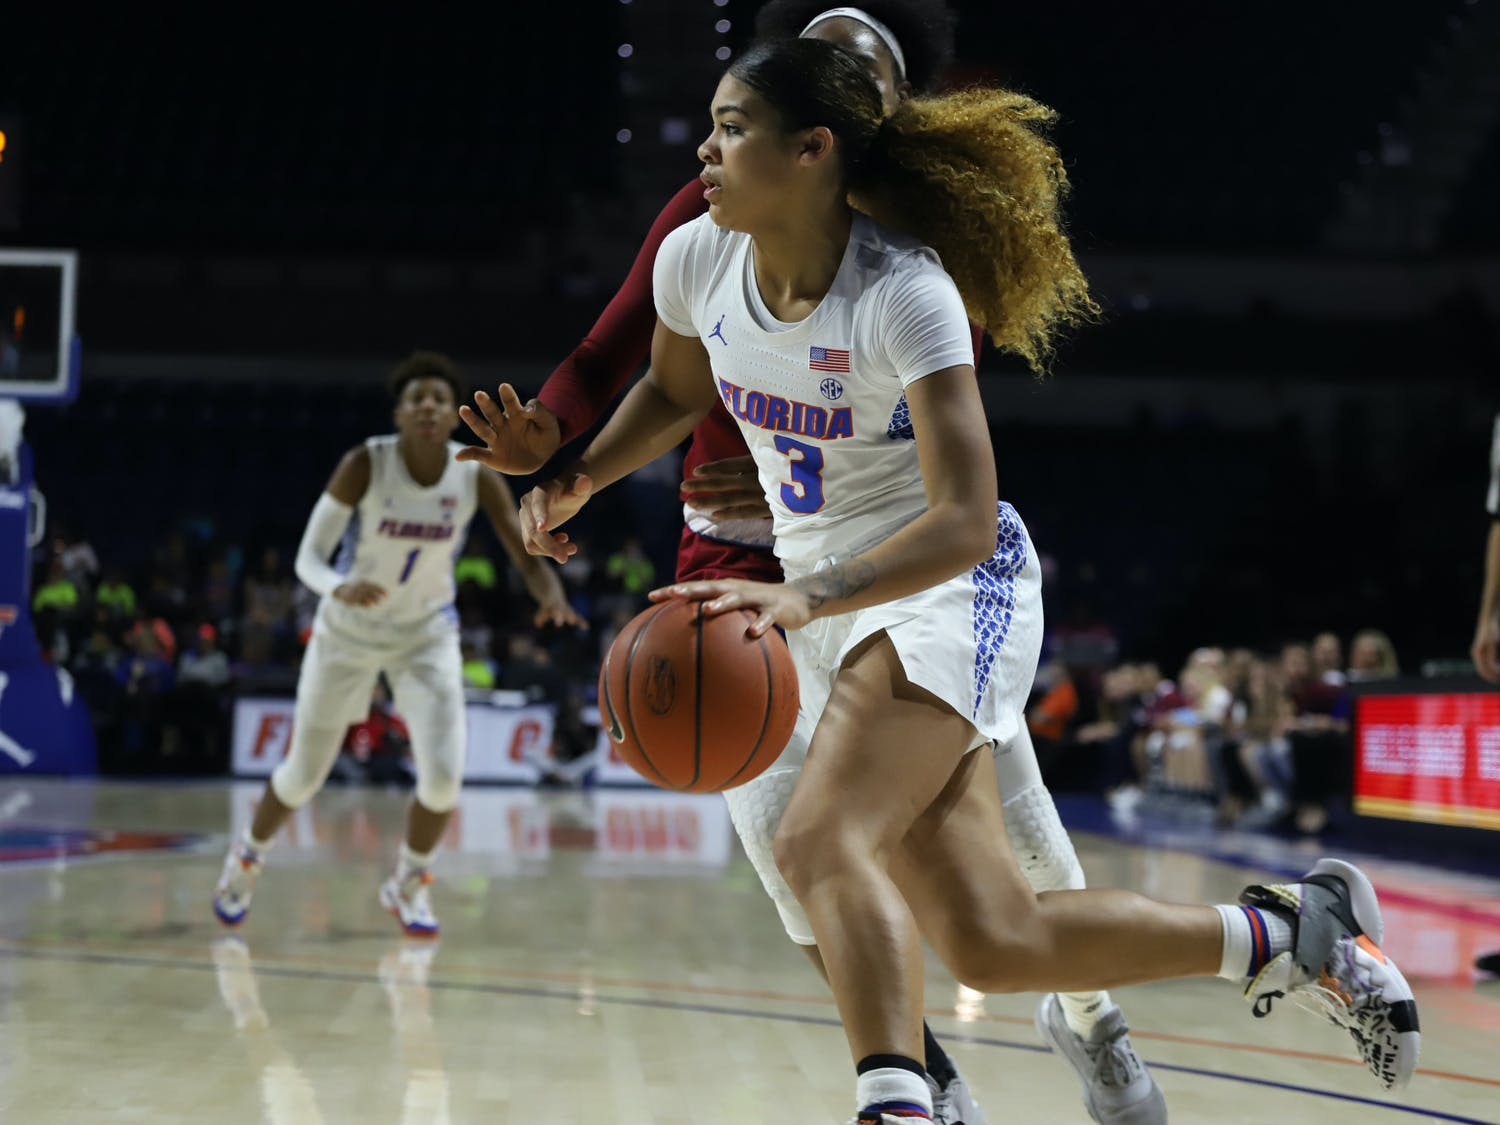 Sophomore Lavender Briggs dropped 20 points in the Gators' victory over UNC Asheville Wednesday evening.